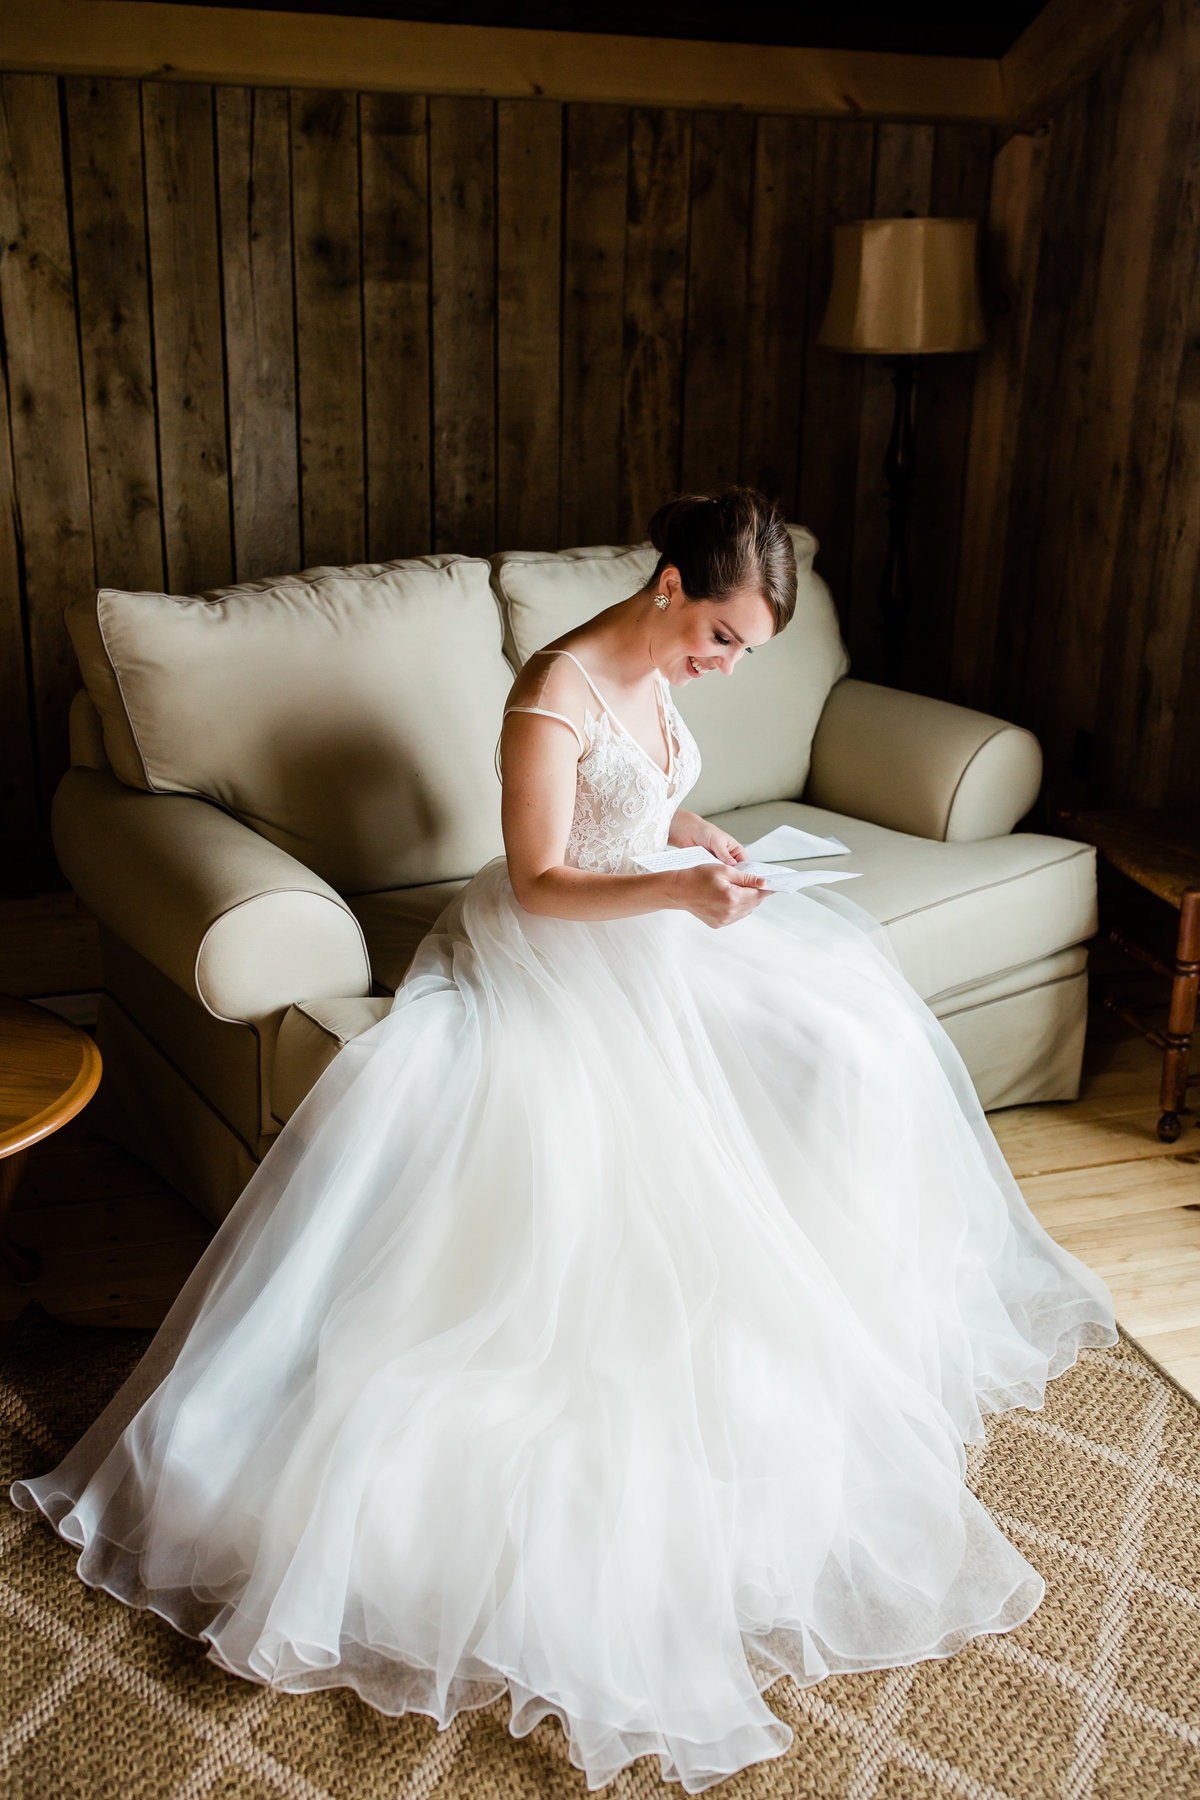 Danielle-Defayette-Photography-Middle-Fork-Barn-Wedding-Bristol-183